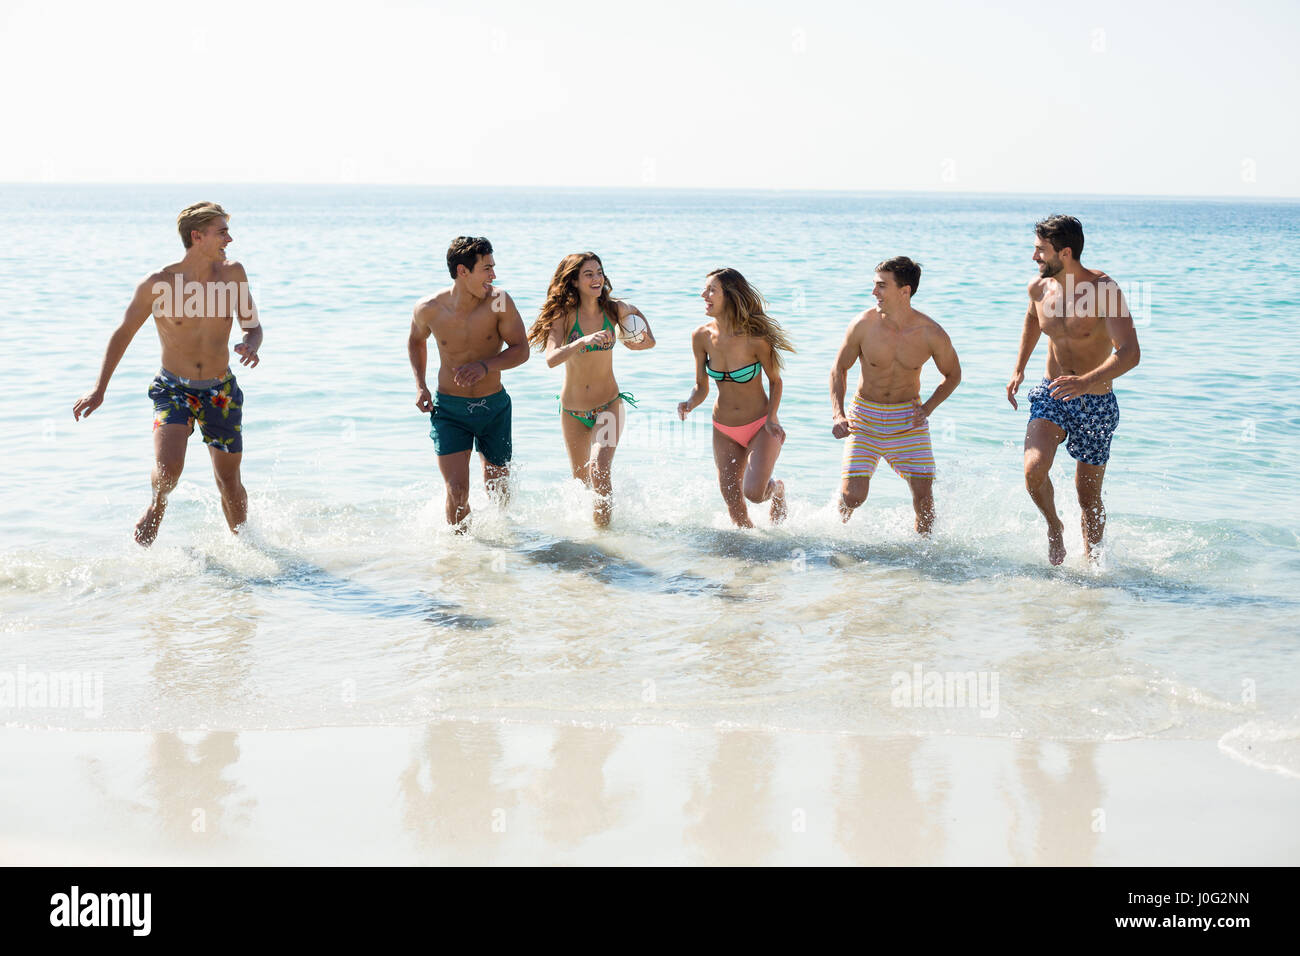 Friends running on shore at beach - Stock Image